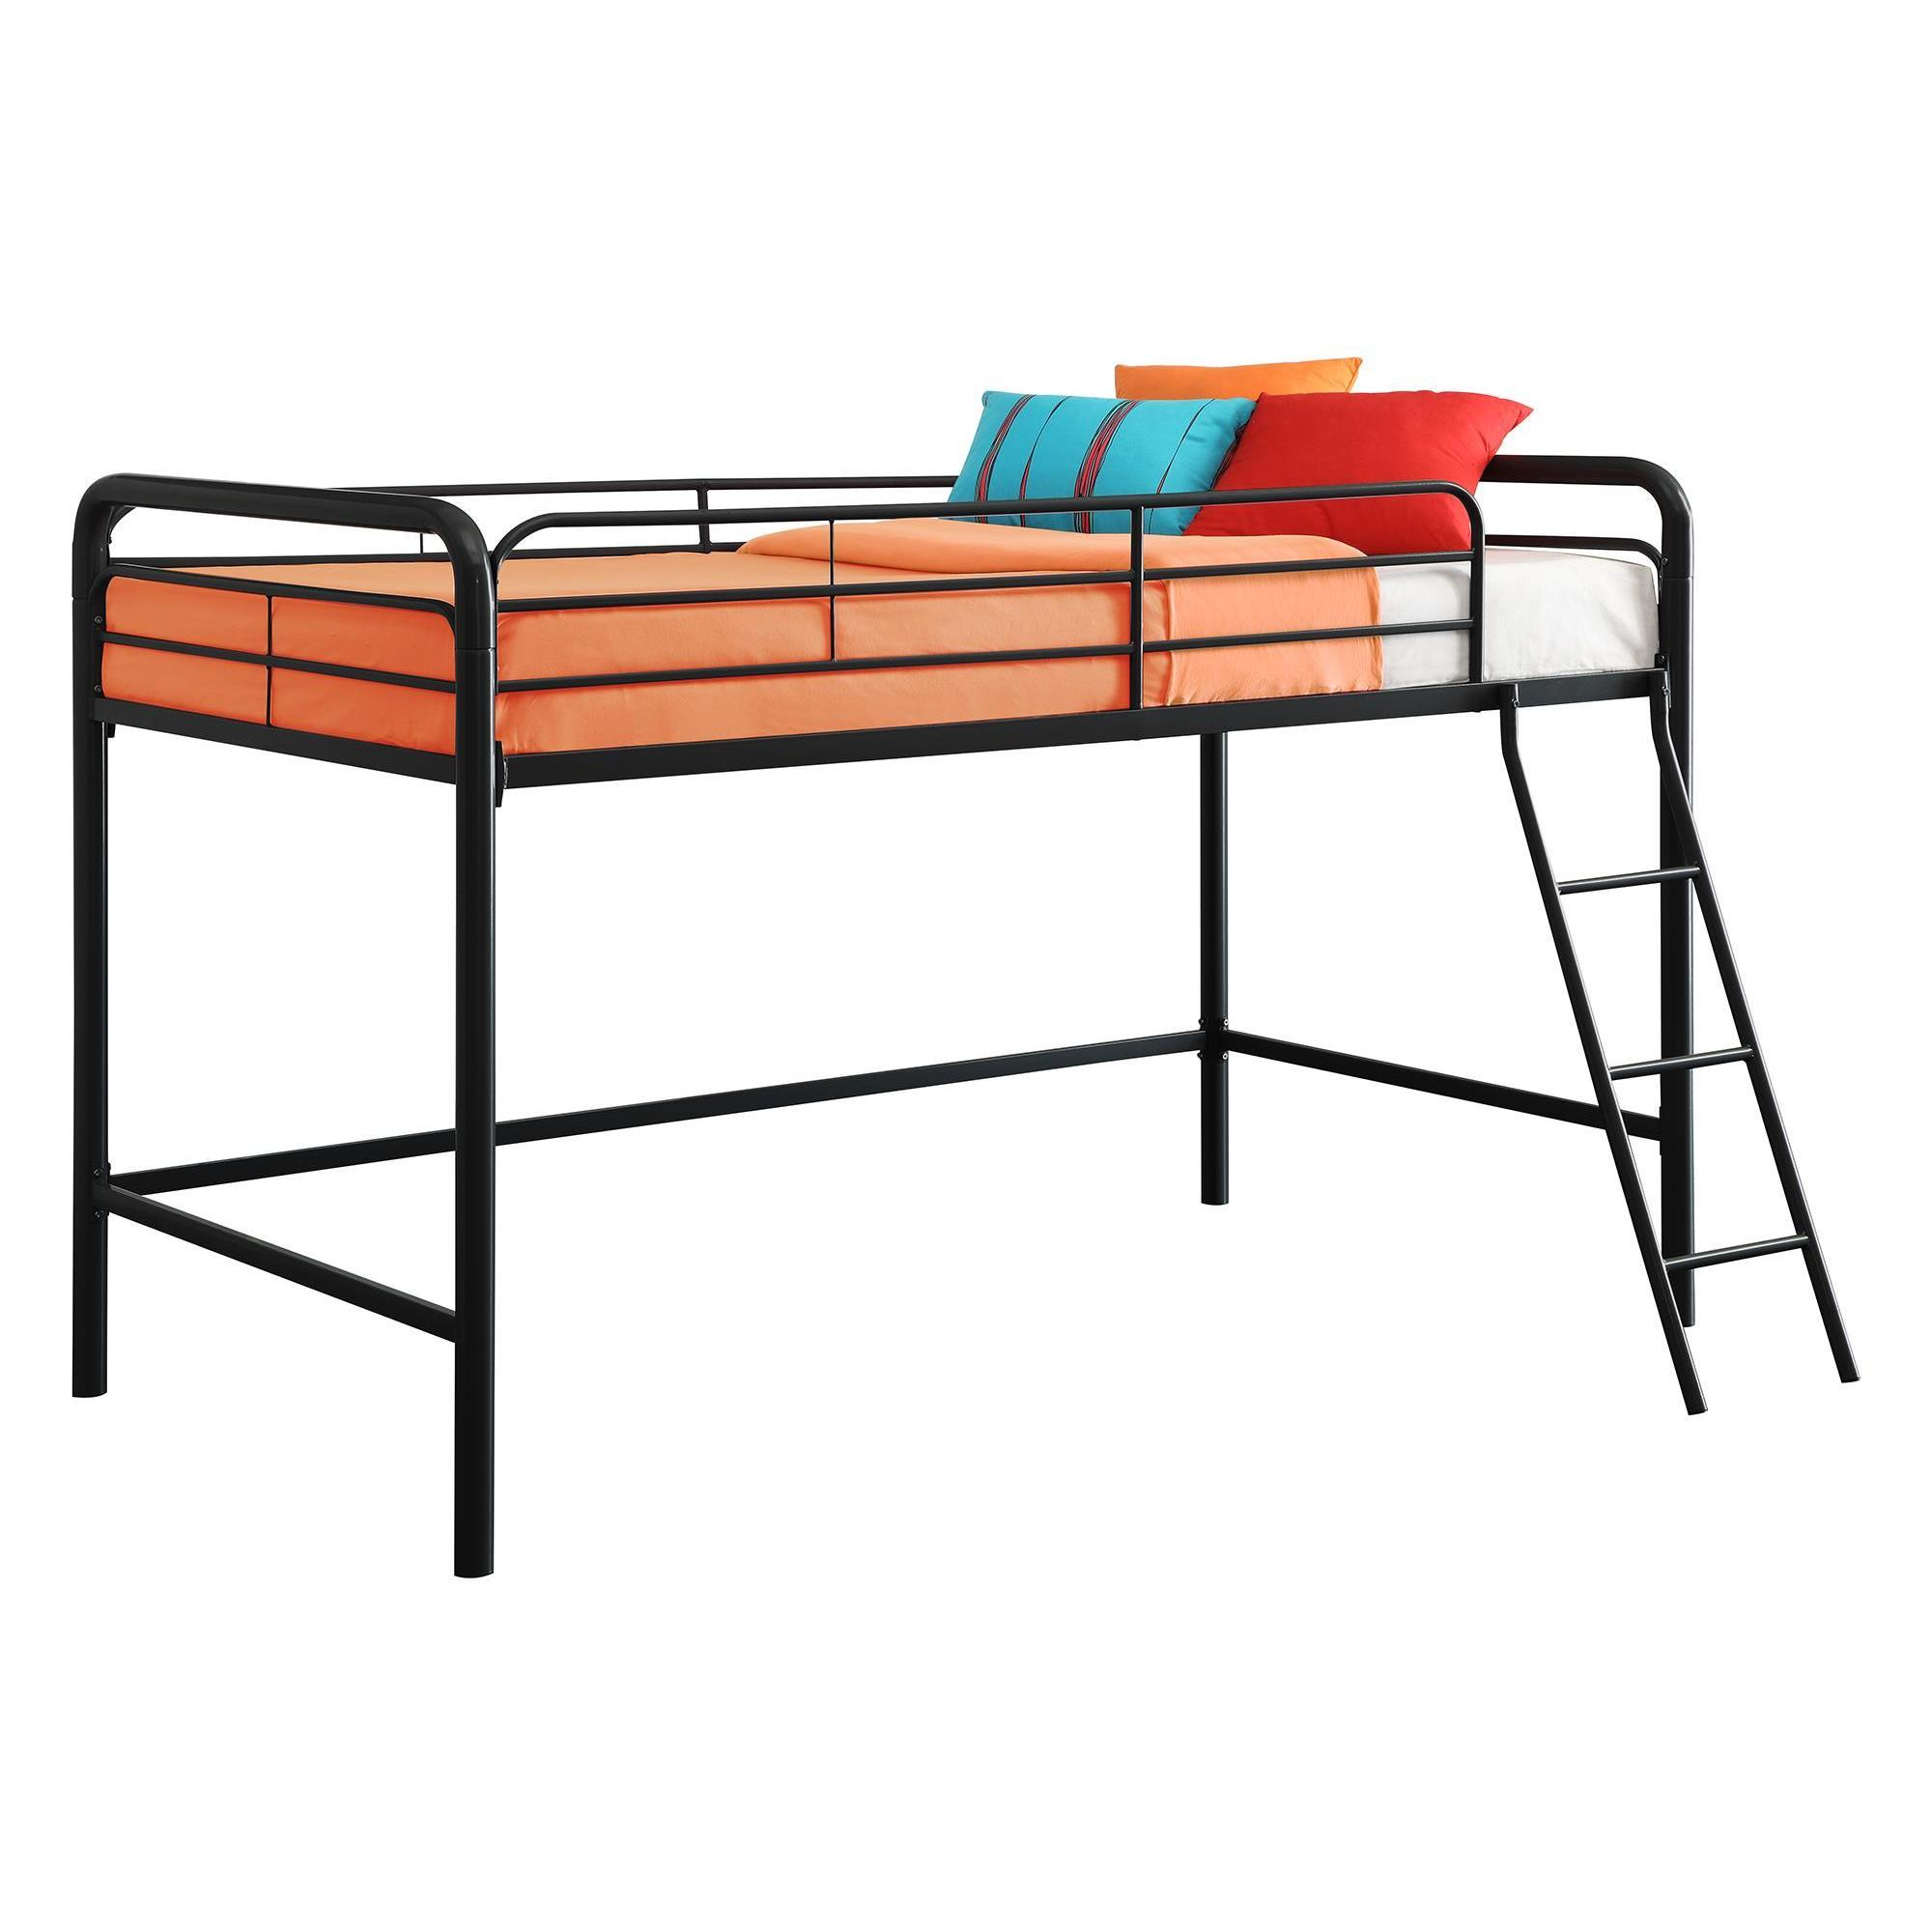 Black Dhp Junior Loft Bed Frame With Ladder